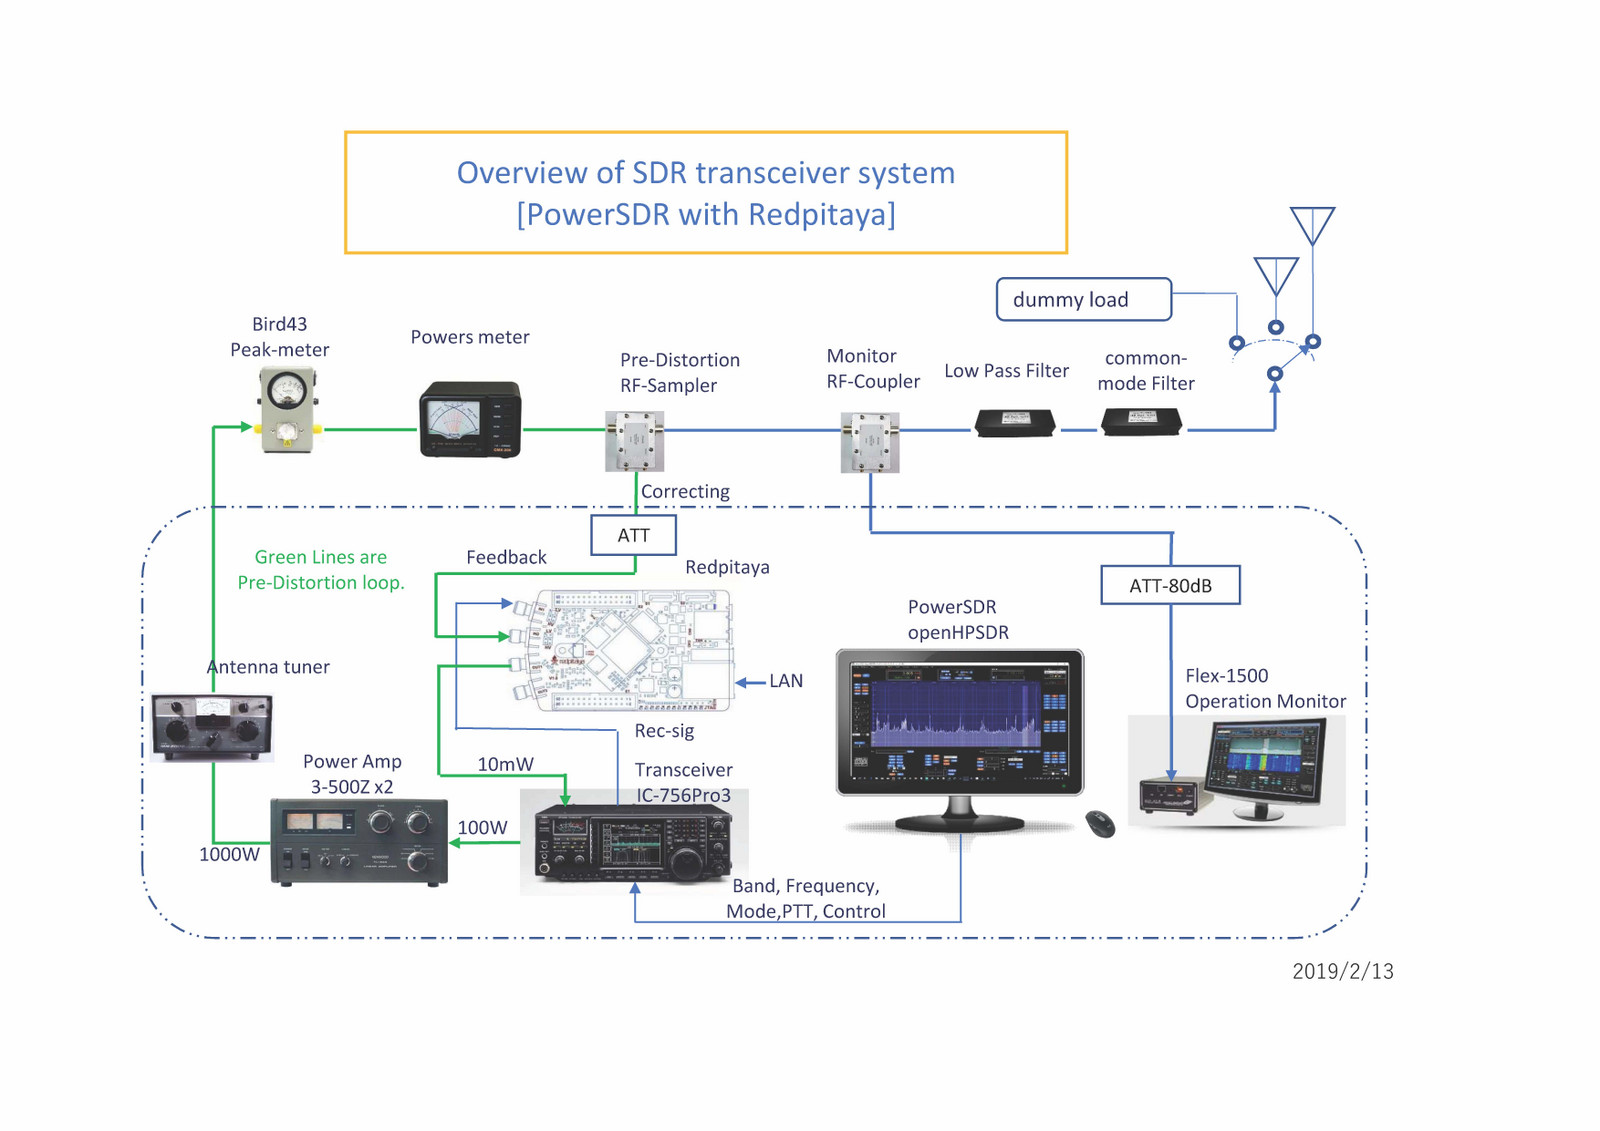 Red Pitaya-openHPSDR-Overview of SDR transceiver system: JRC